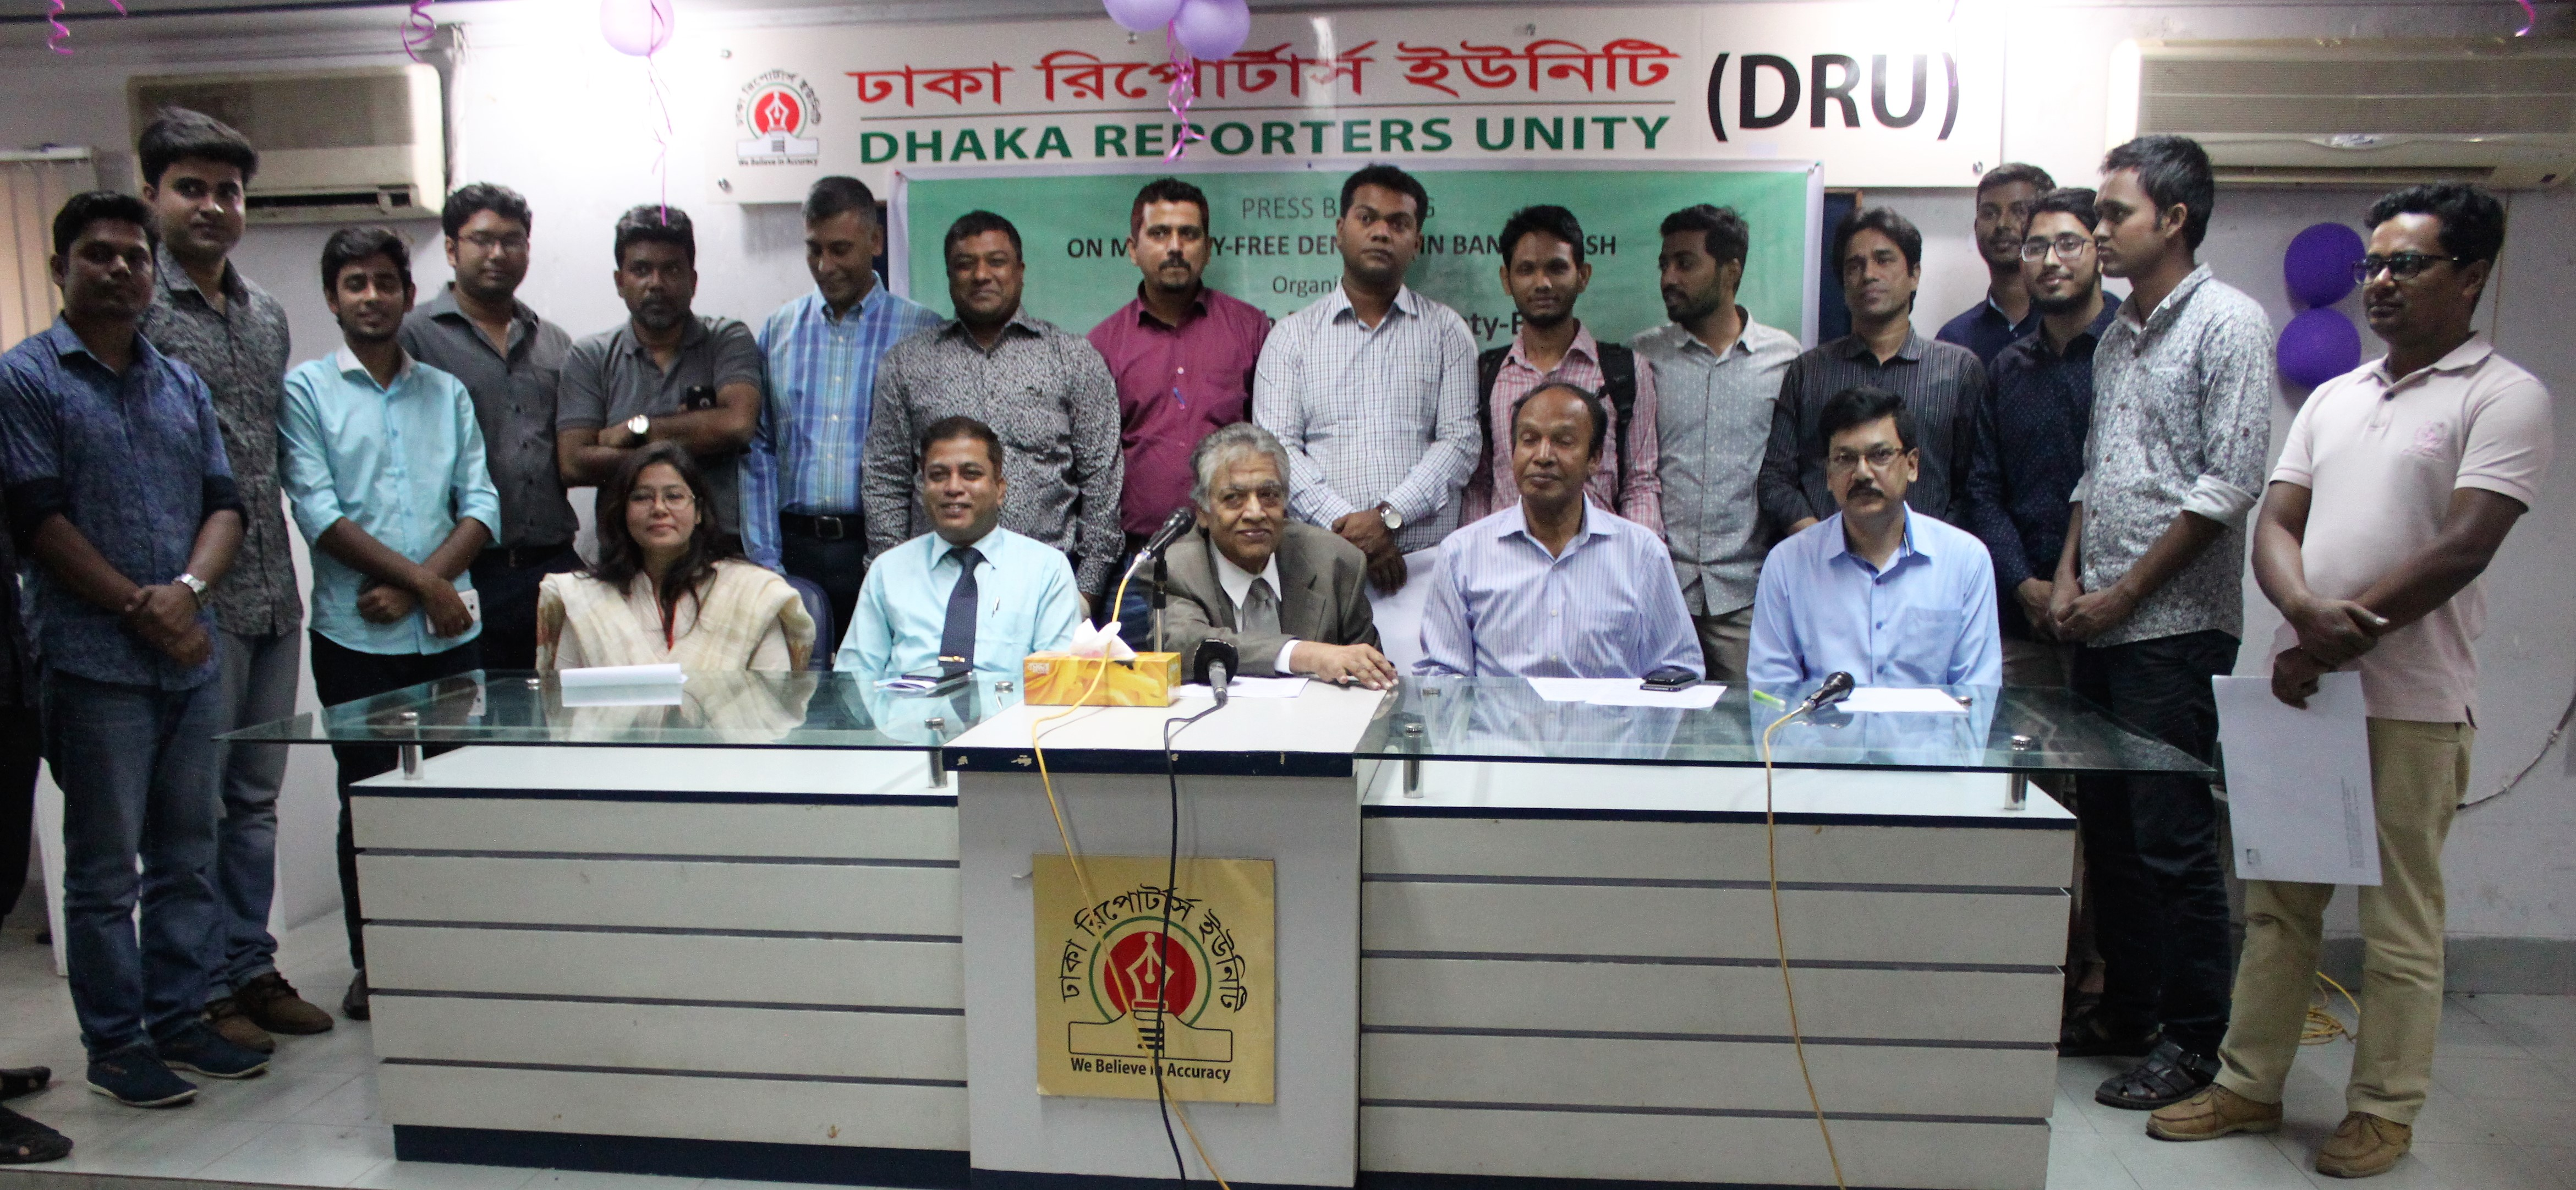 Bangladesh Dental Society declares 'Phase Out Mercury Dental Amalgam in the treatment of pregnant women, nursing mother and children within June, 2018'